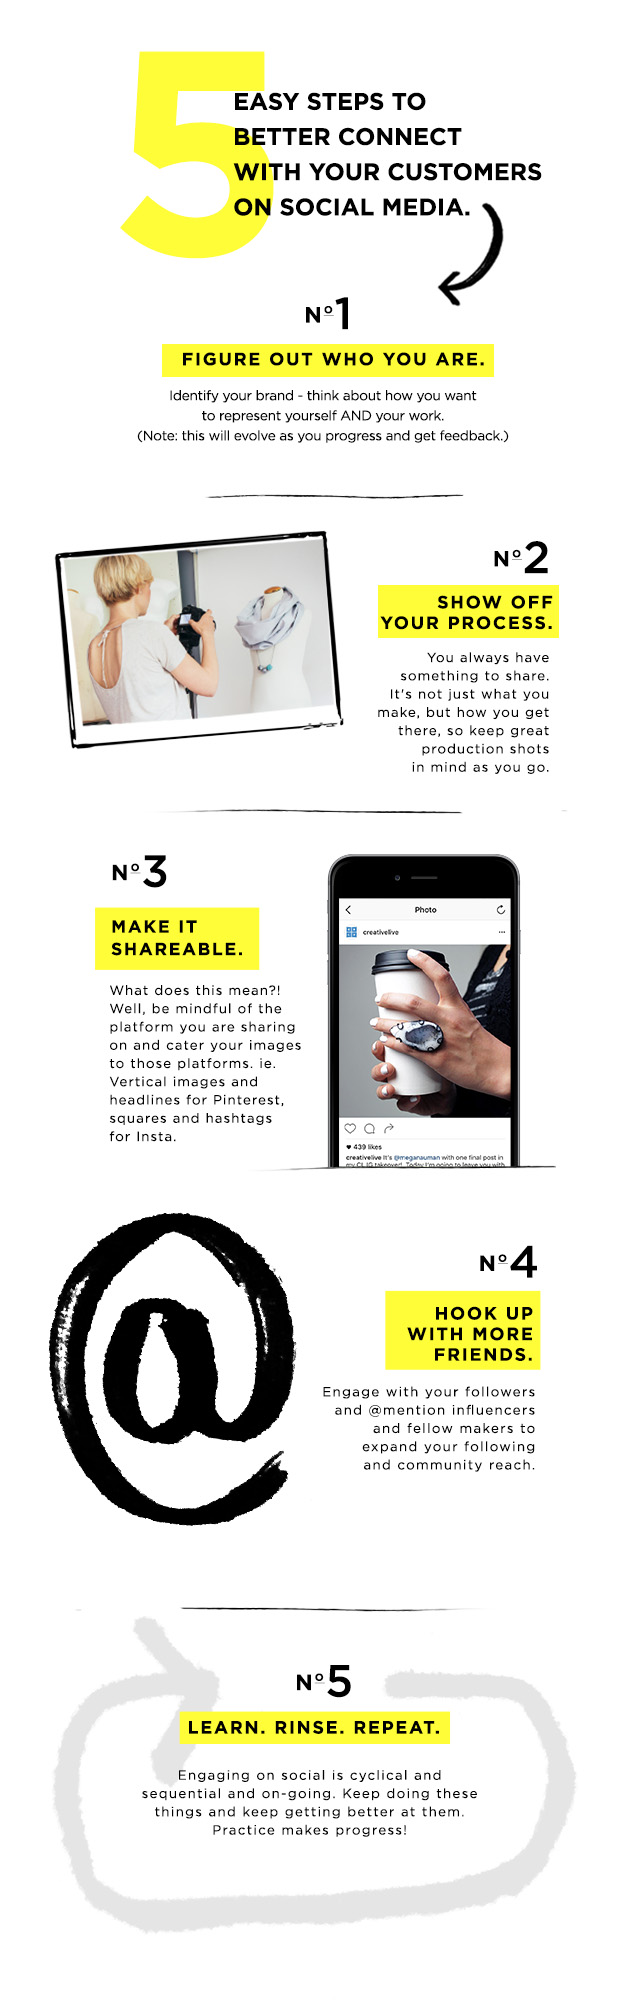 Learn how to get more followers using the 5 steps outlined in this infographic from CreativeLive.